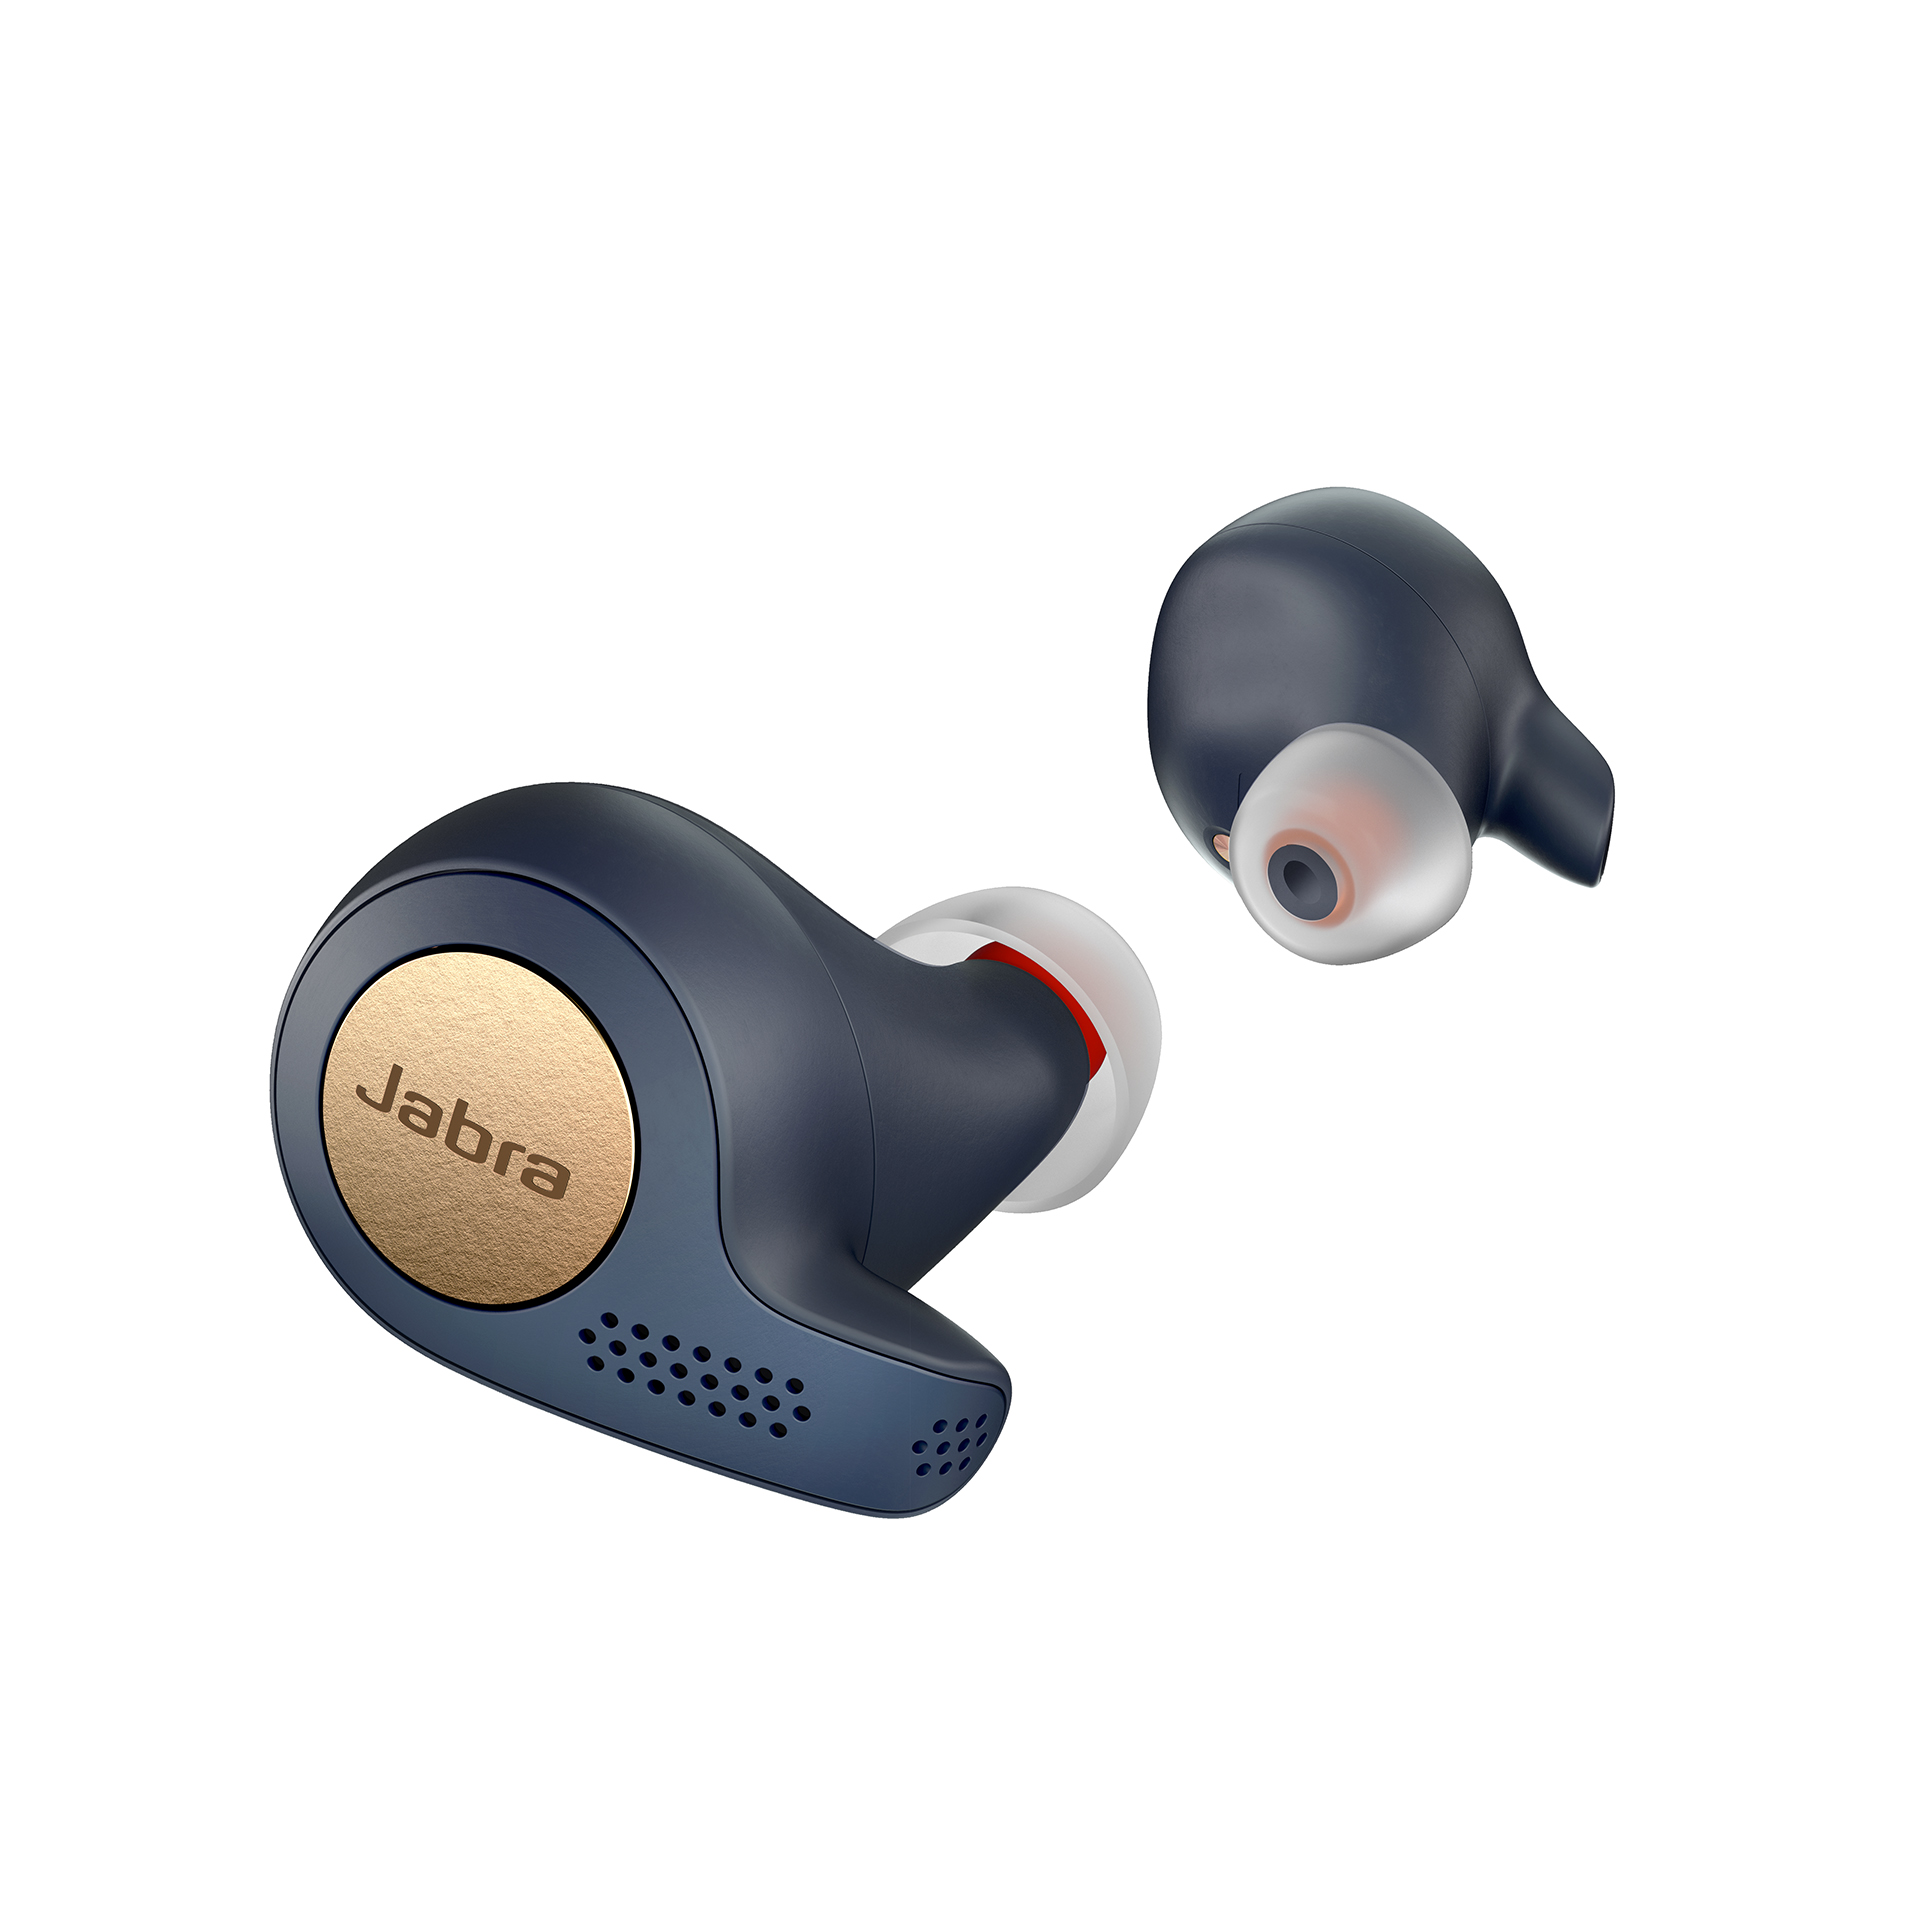 Jabra-Elite-Active-65t-True-Wireless-Earbuds-Manufacturer-Refurbished thumbnail 18